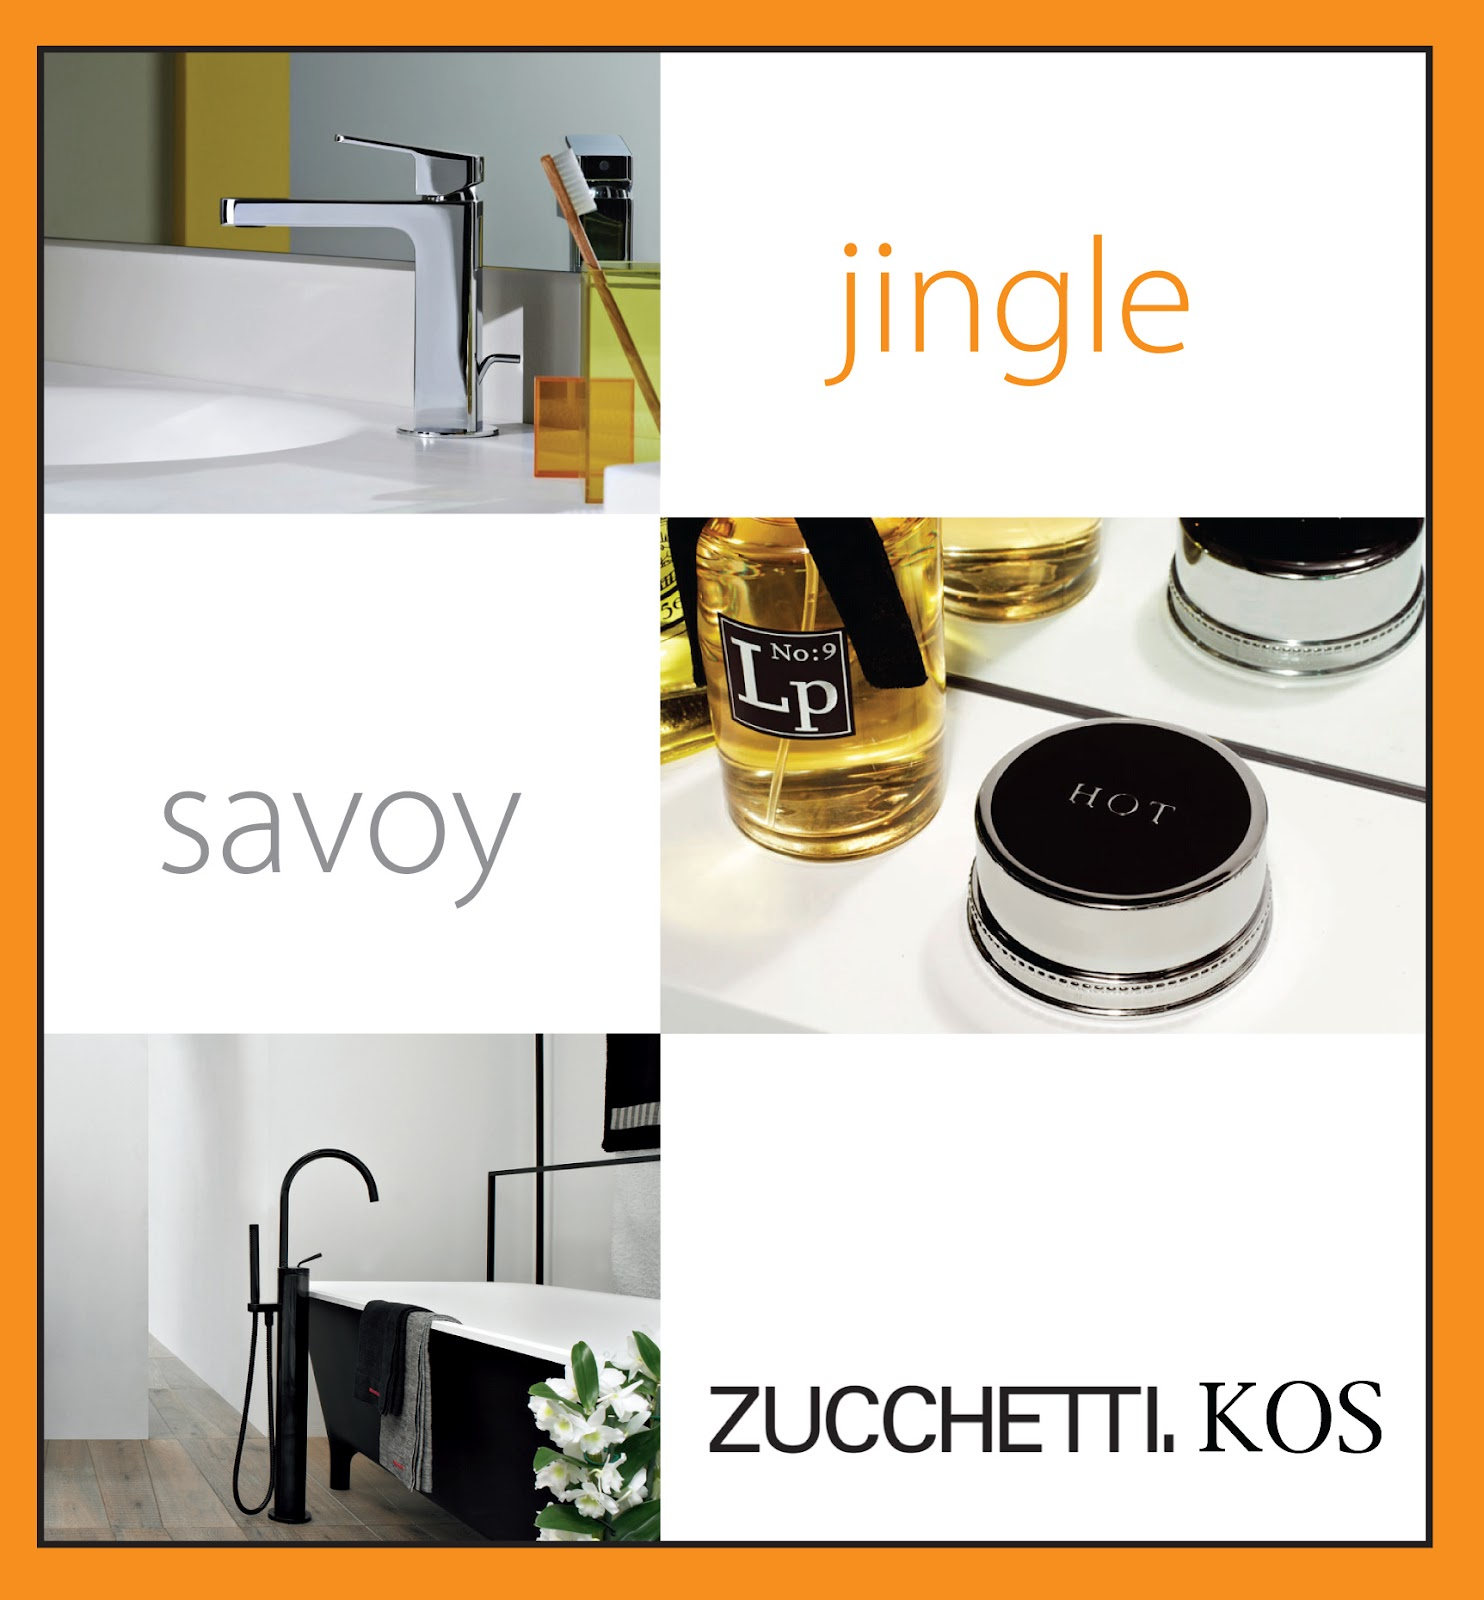 Designer Bath Blog: Getting to know Zucchetti